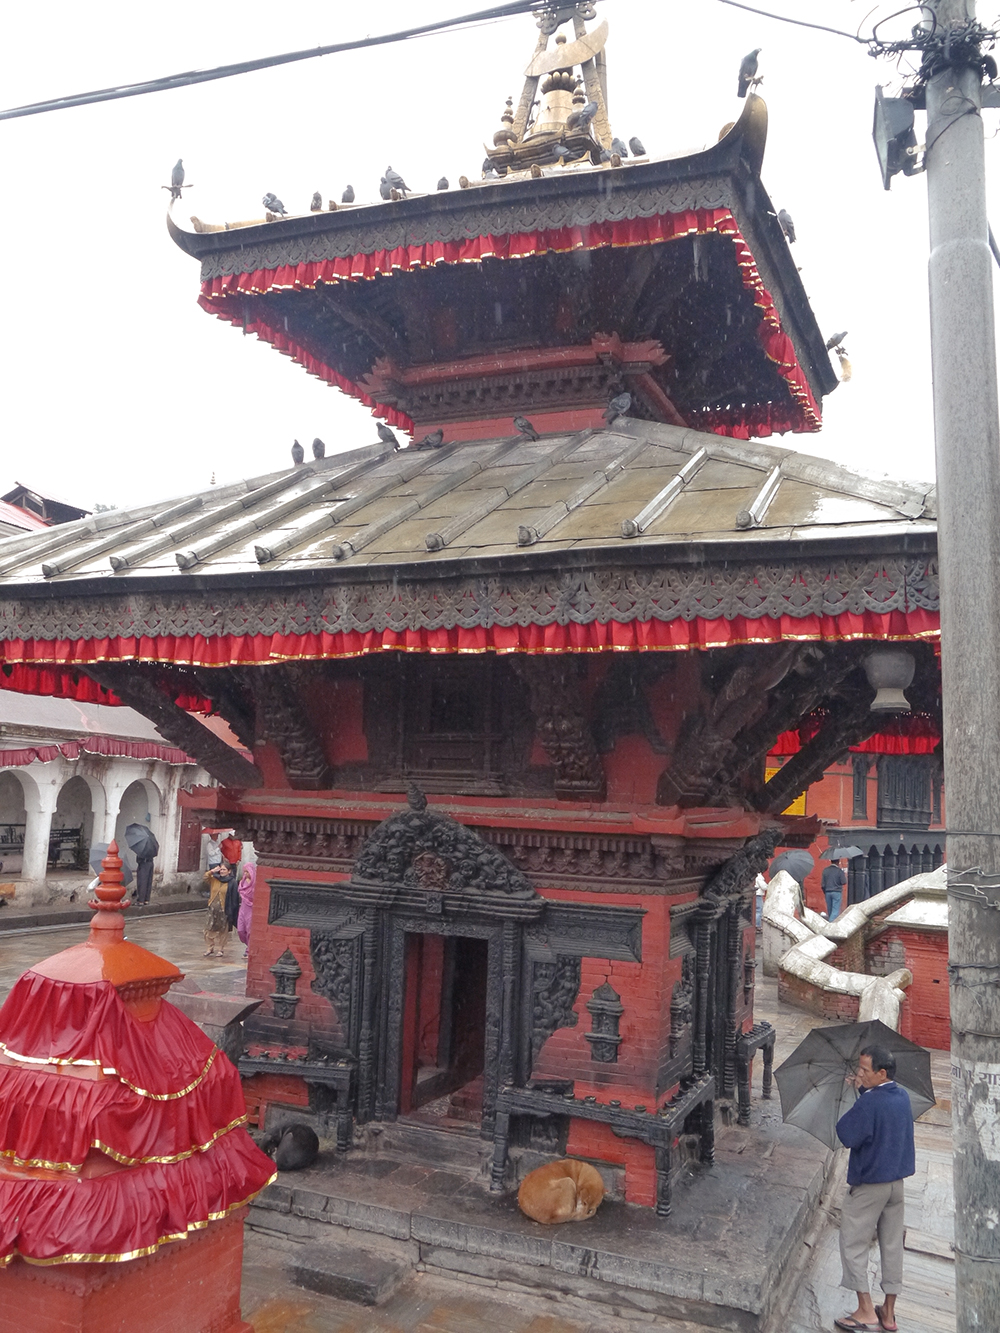 Trip to Nepal, nepal tourism, travel nepal, Kathmandu, Pashupatinath, activities in Kathmandu